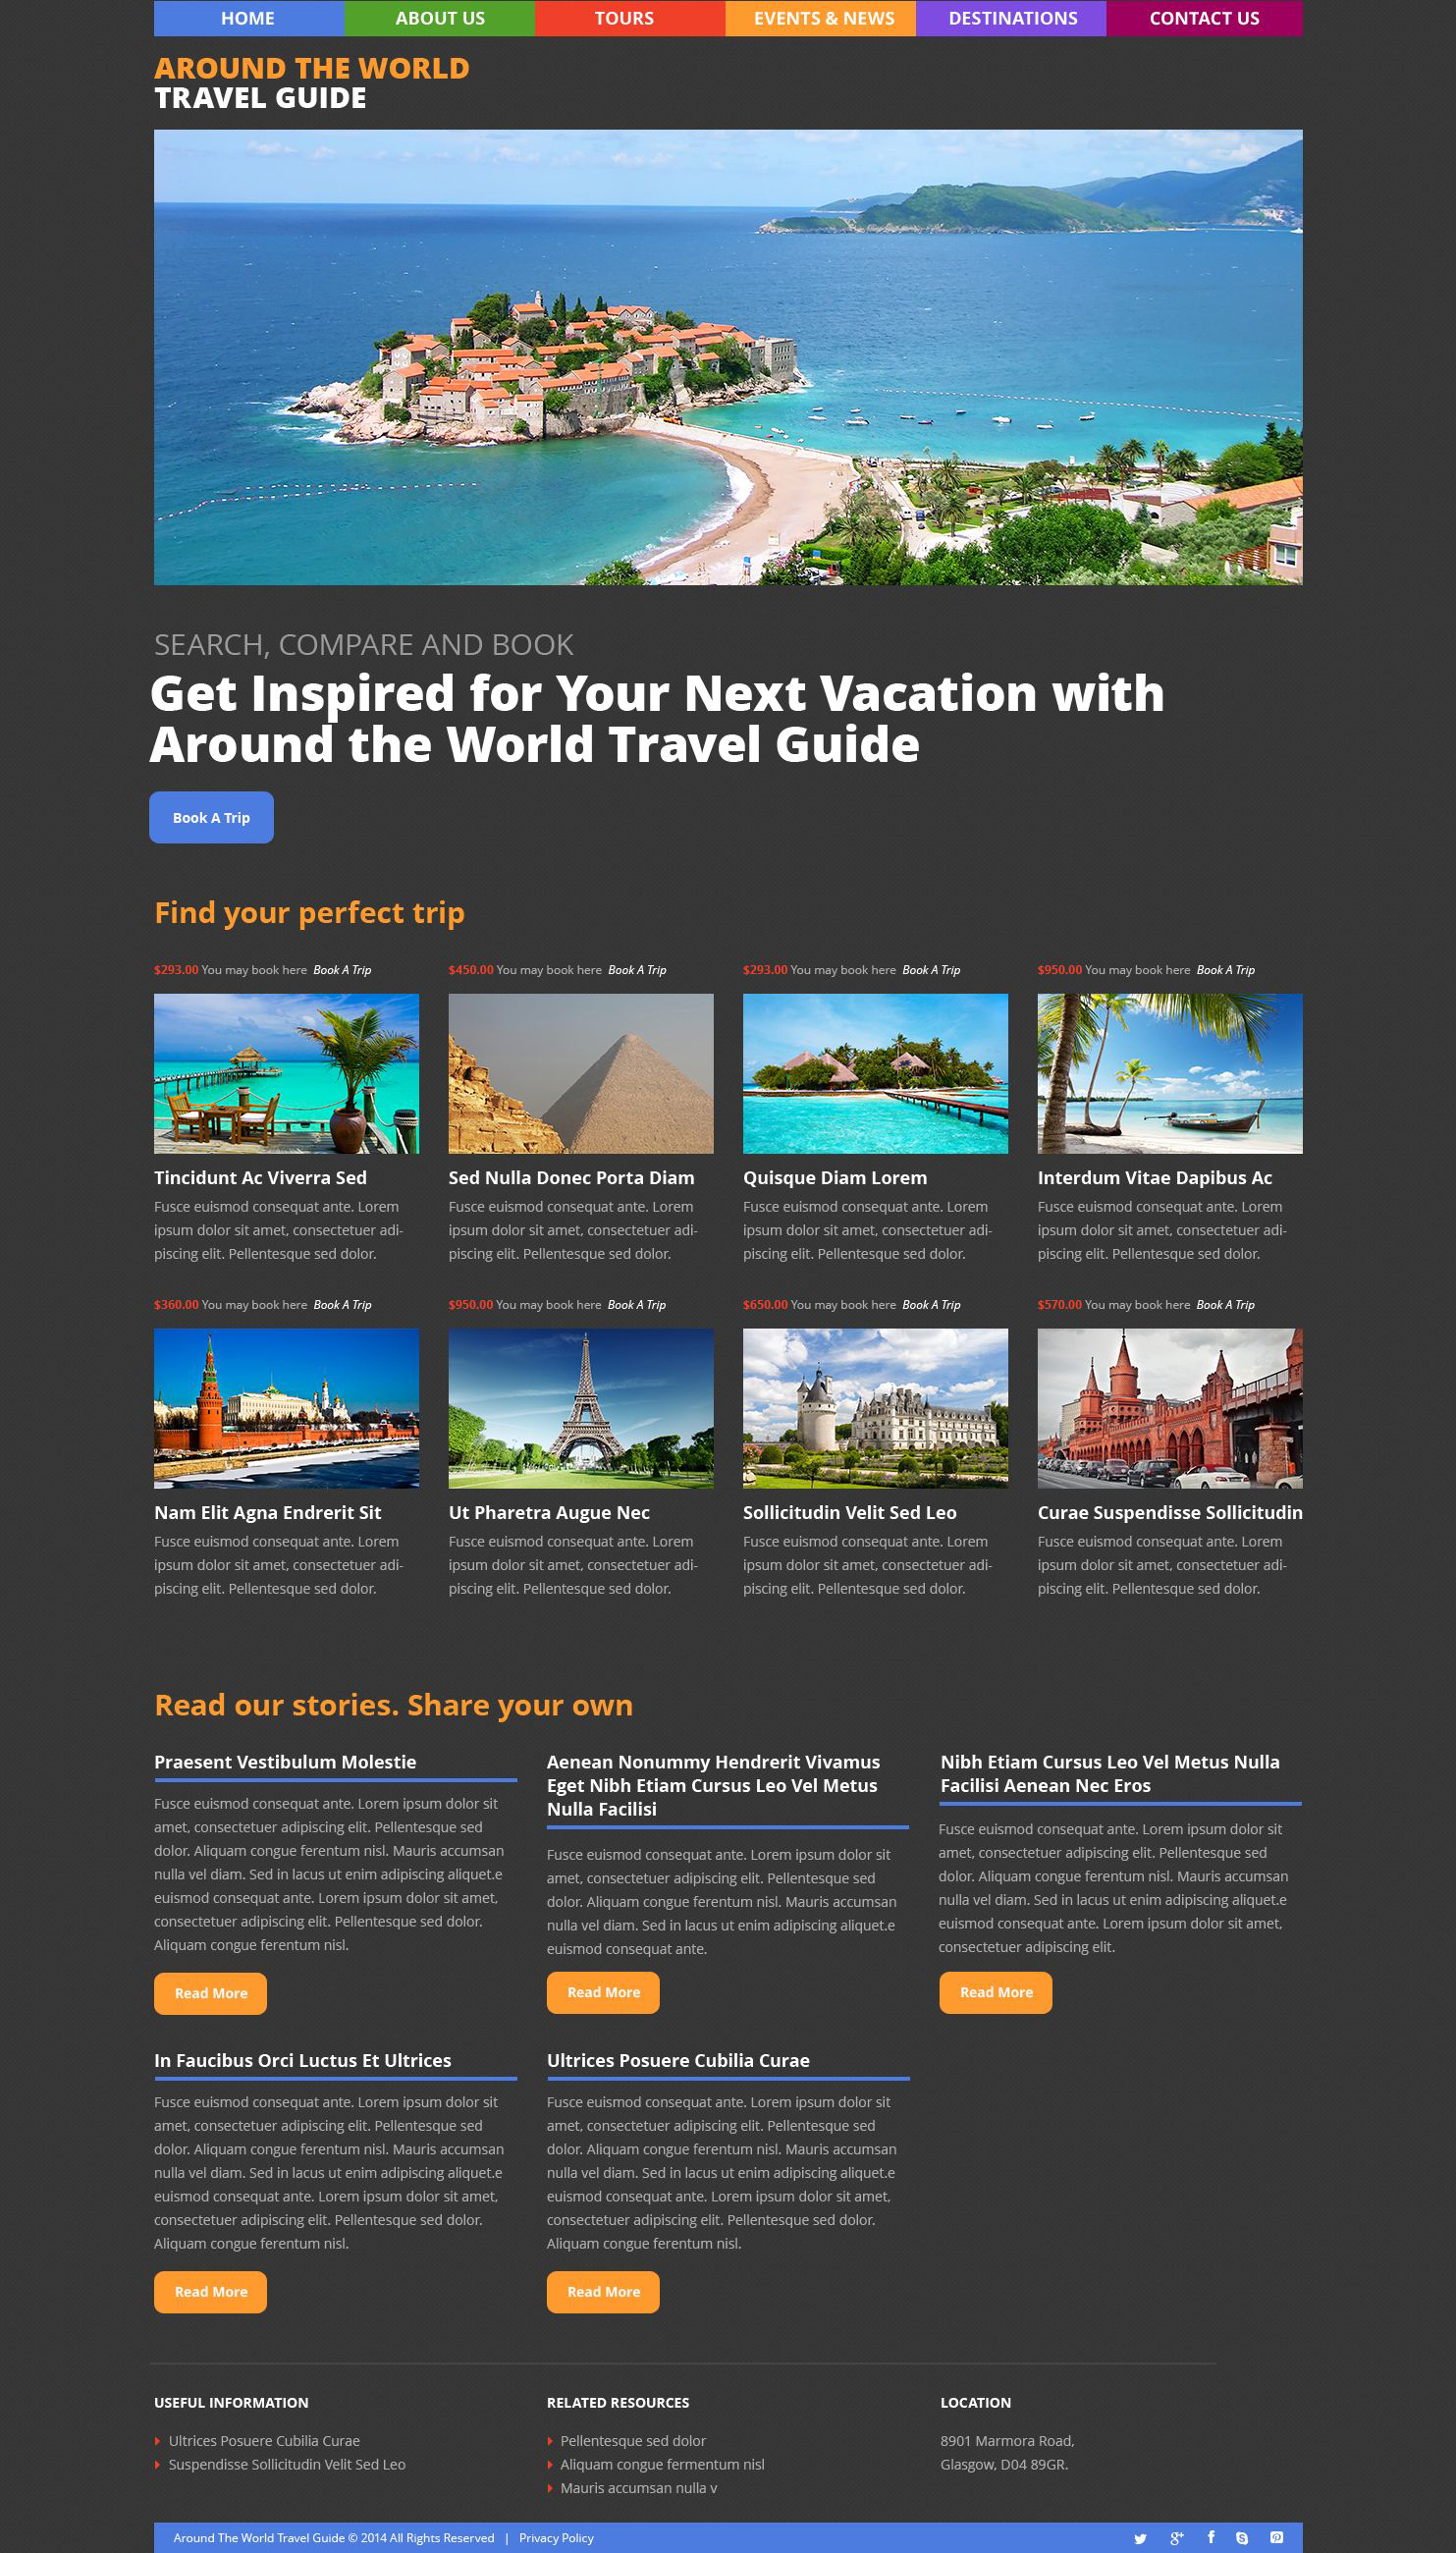 The Travel Agency WordPress Design 53489, one of the best WordPress themes of its kind (travel, most popular), also known as travel agency WordPress template, compass WordPress template, tour country WordPress template, resort WordPress template, spa WordPress template, flight hotel WordPress template, car WordPress template, rental WordPress template, cruise WordPress template, sights WordPress template, reservation WordPress template, location WordPress template, authorization WordPress template, ticket WordPress template, guide WordPress template, beach WordPress template, sea WordPress template, relaxation WordPress template, recreation WordPress template, impression WordPress template, air WordPress template, liner WordPress template, traveling WordPress template, apartment WordPress template, vacation WordPress template, rest WordPress template, comfort WordPress template, destination WordPress template, explorat and related with travel agency, compass, tour country, resort, spa, flight hotel, car, rental, cruise, sights, reservation, location, authorization, ticket, guide, beach, sea, relaxation, recreation, impression, air, liner, traveling, apartment, vacation, rest, comfort, destination, explorat, etc.